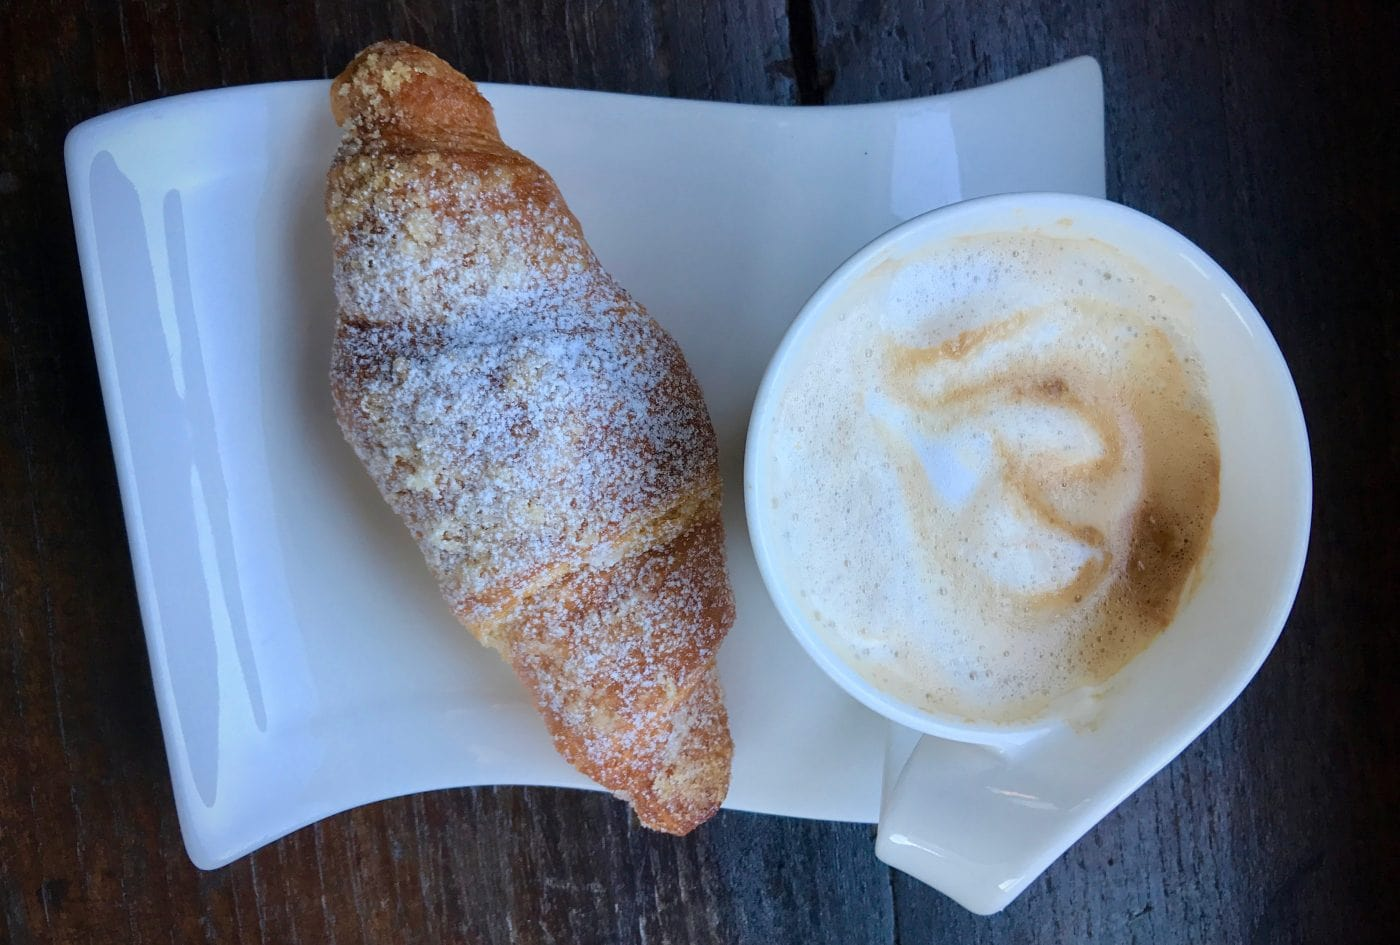 Breakfast in Italy: Café + Cornetto